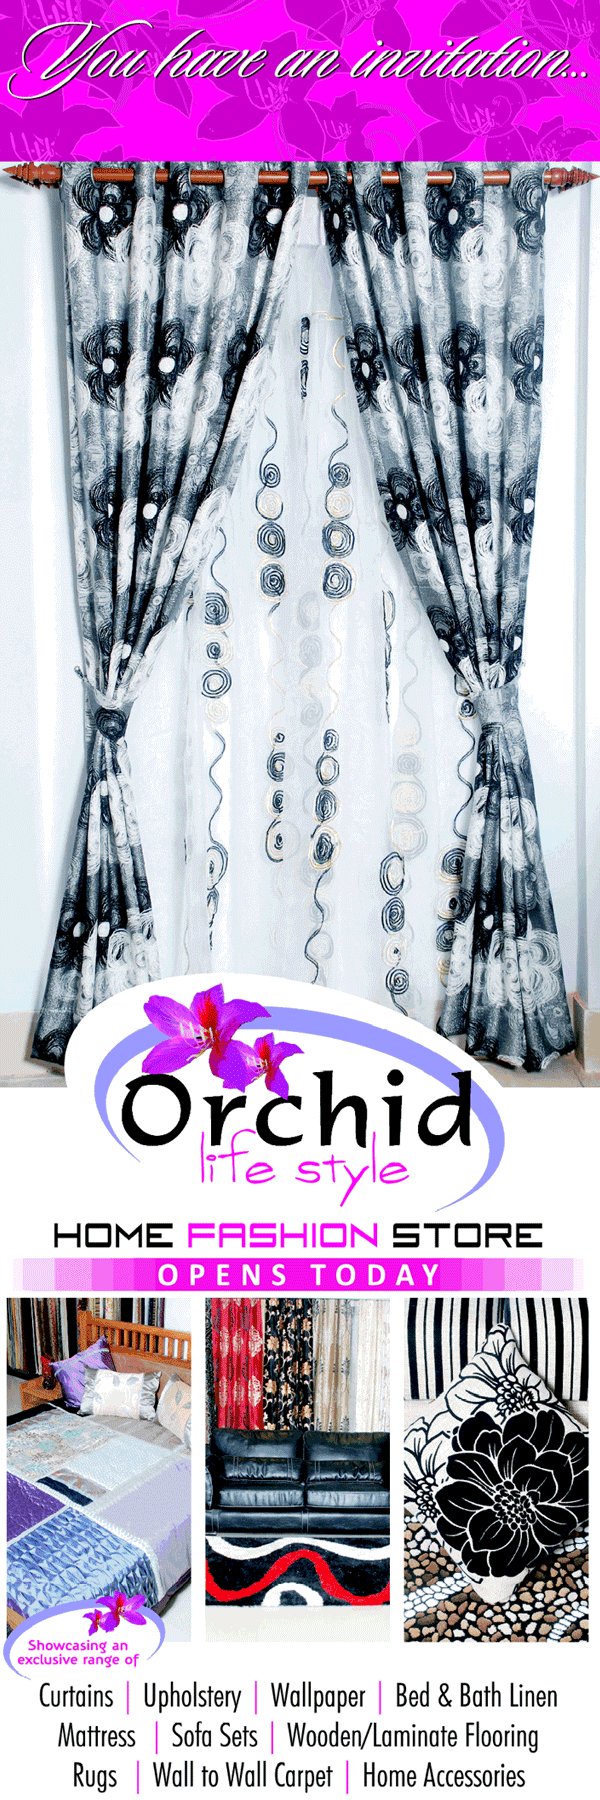 Orchid Life Style offers India